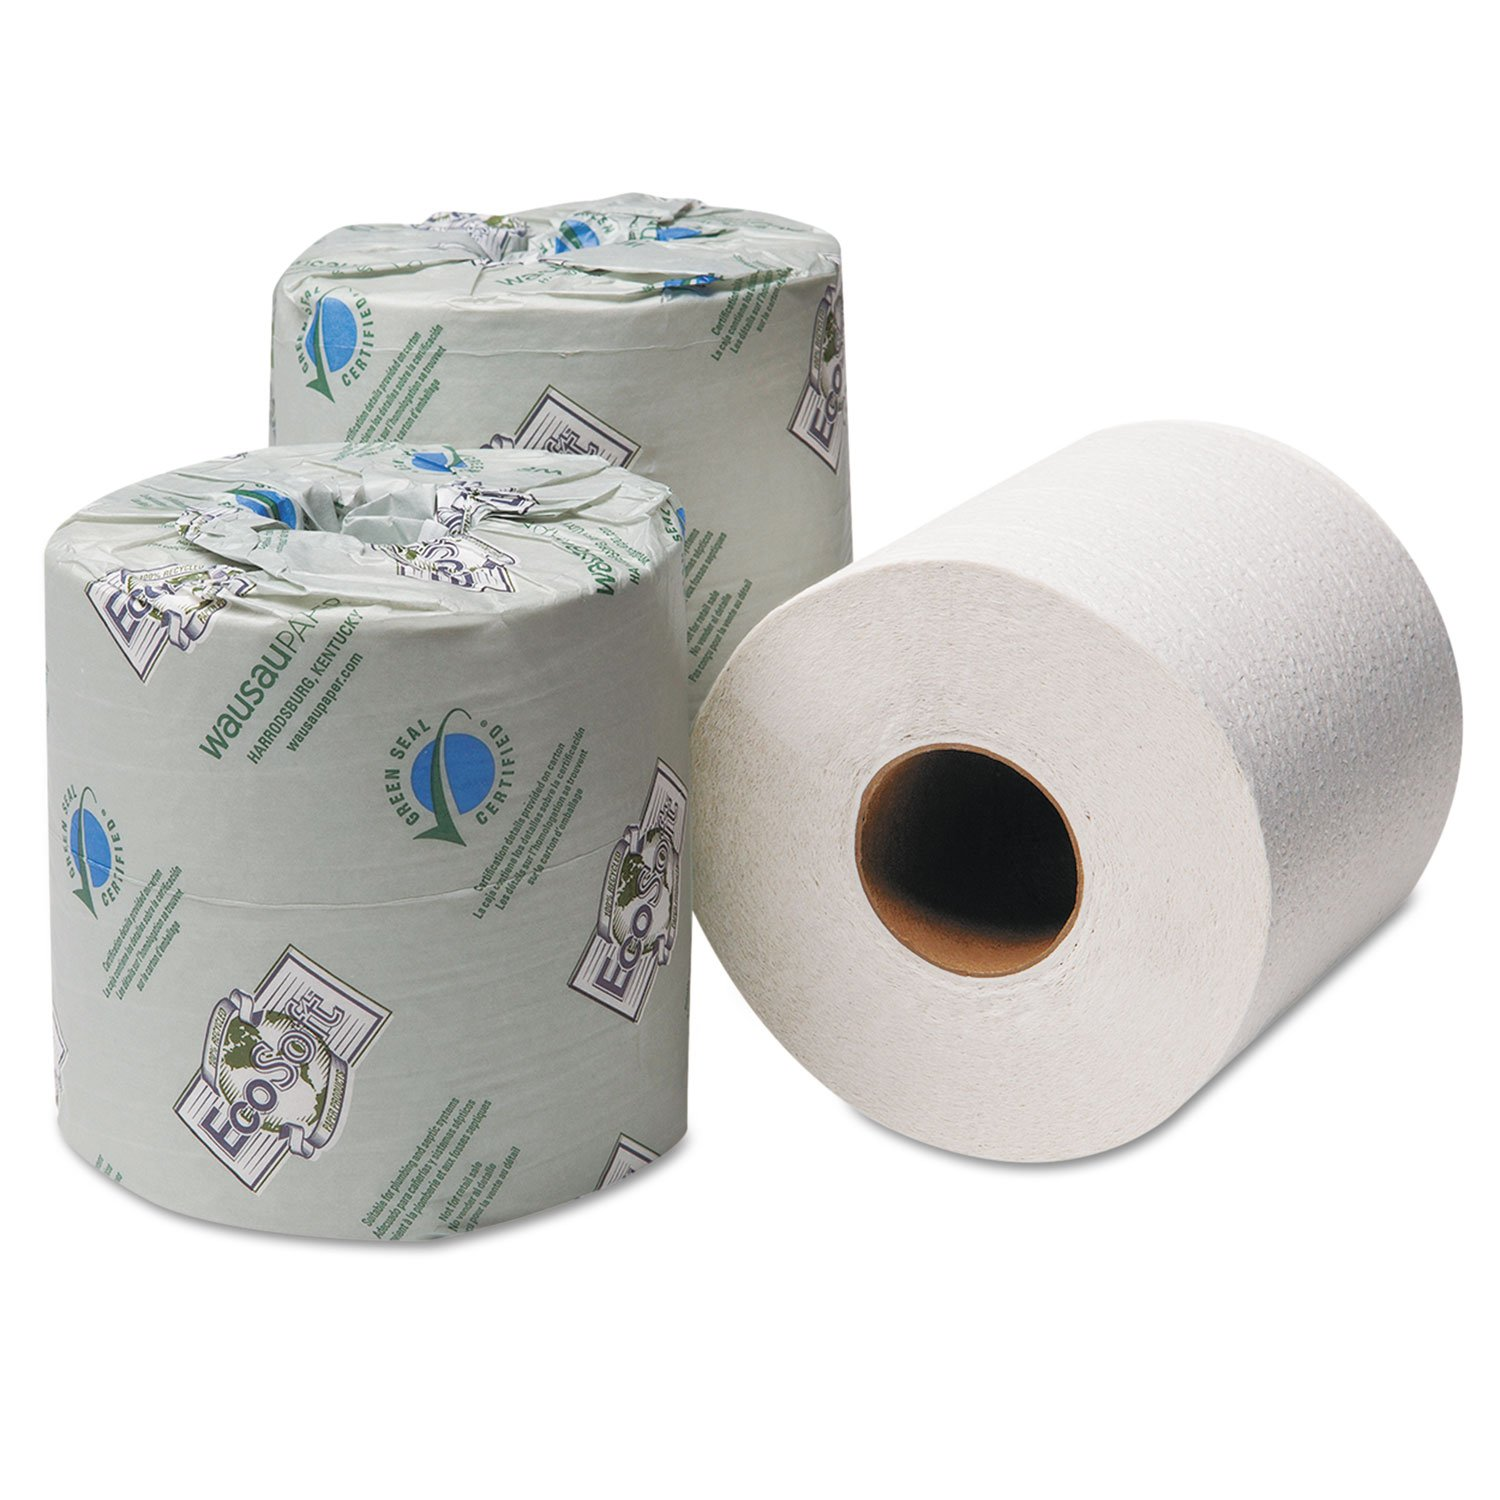 Amazoncom Ecosoft Seal Ply Toilet Paper Sheets Per Roll - Bathroom tissue on sale